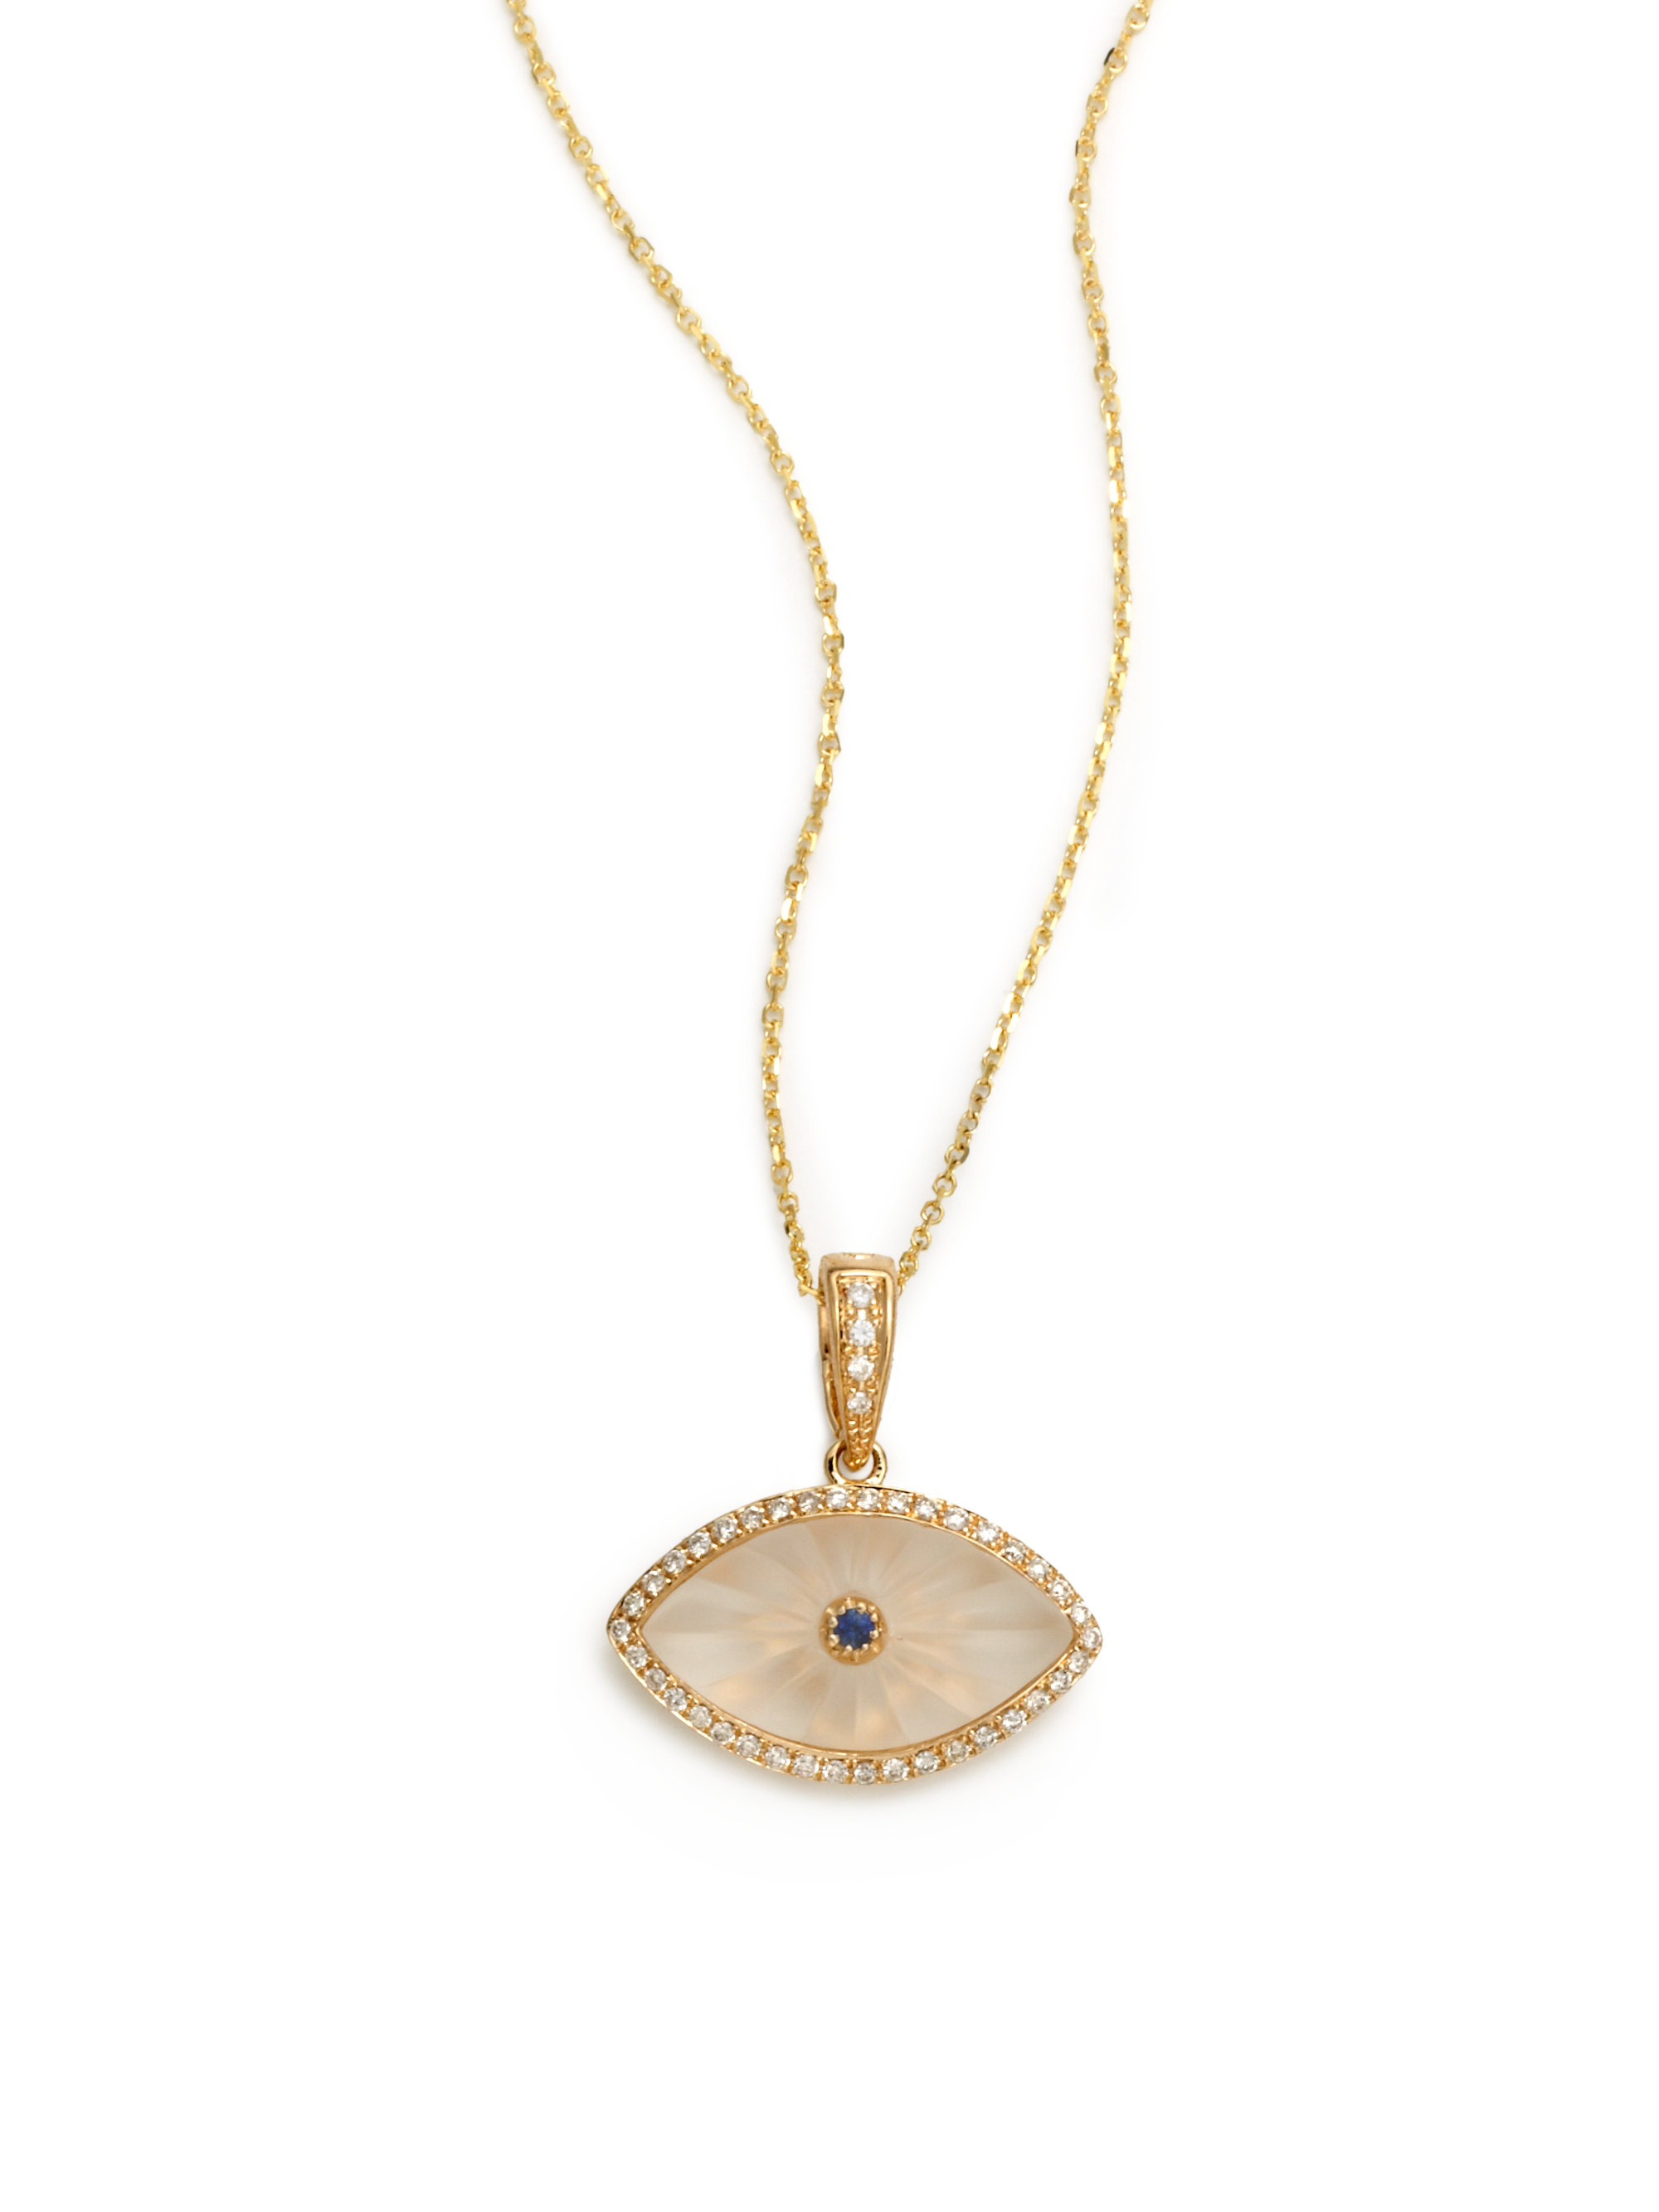 designs gallery eye gold jewelry evil lyst diamond kc in product sapphire metallic necklace